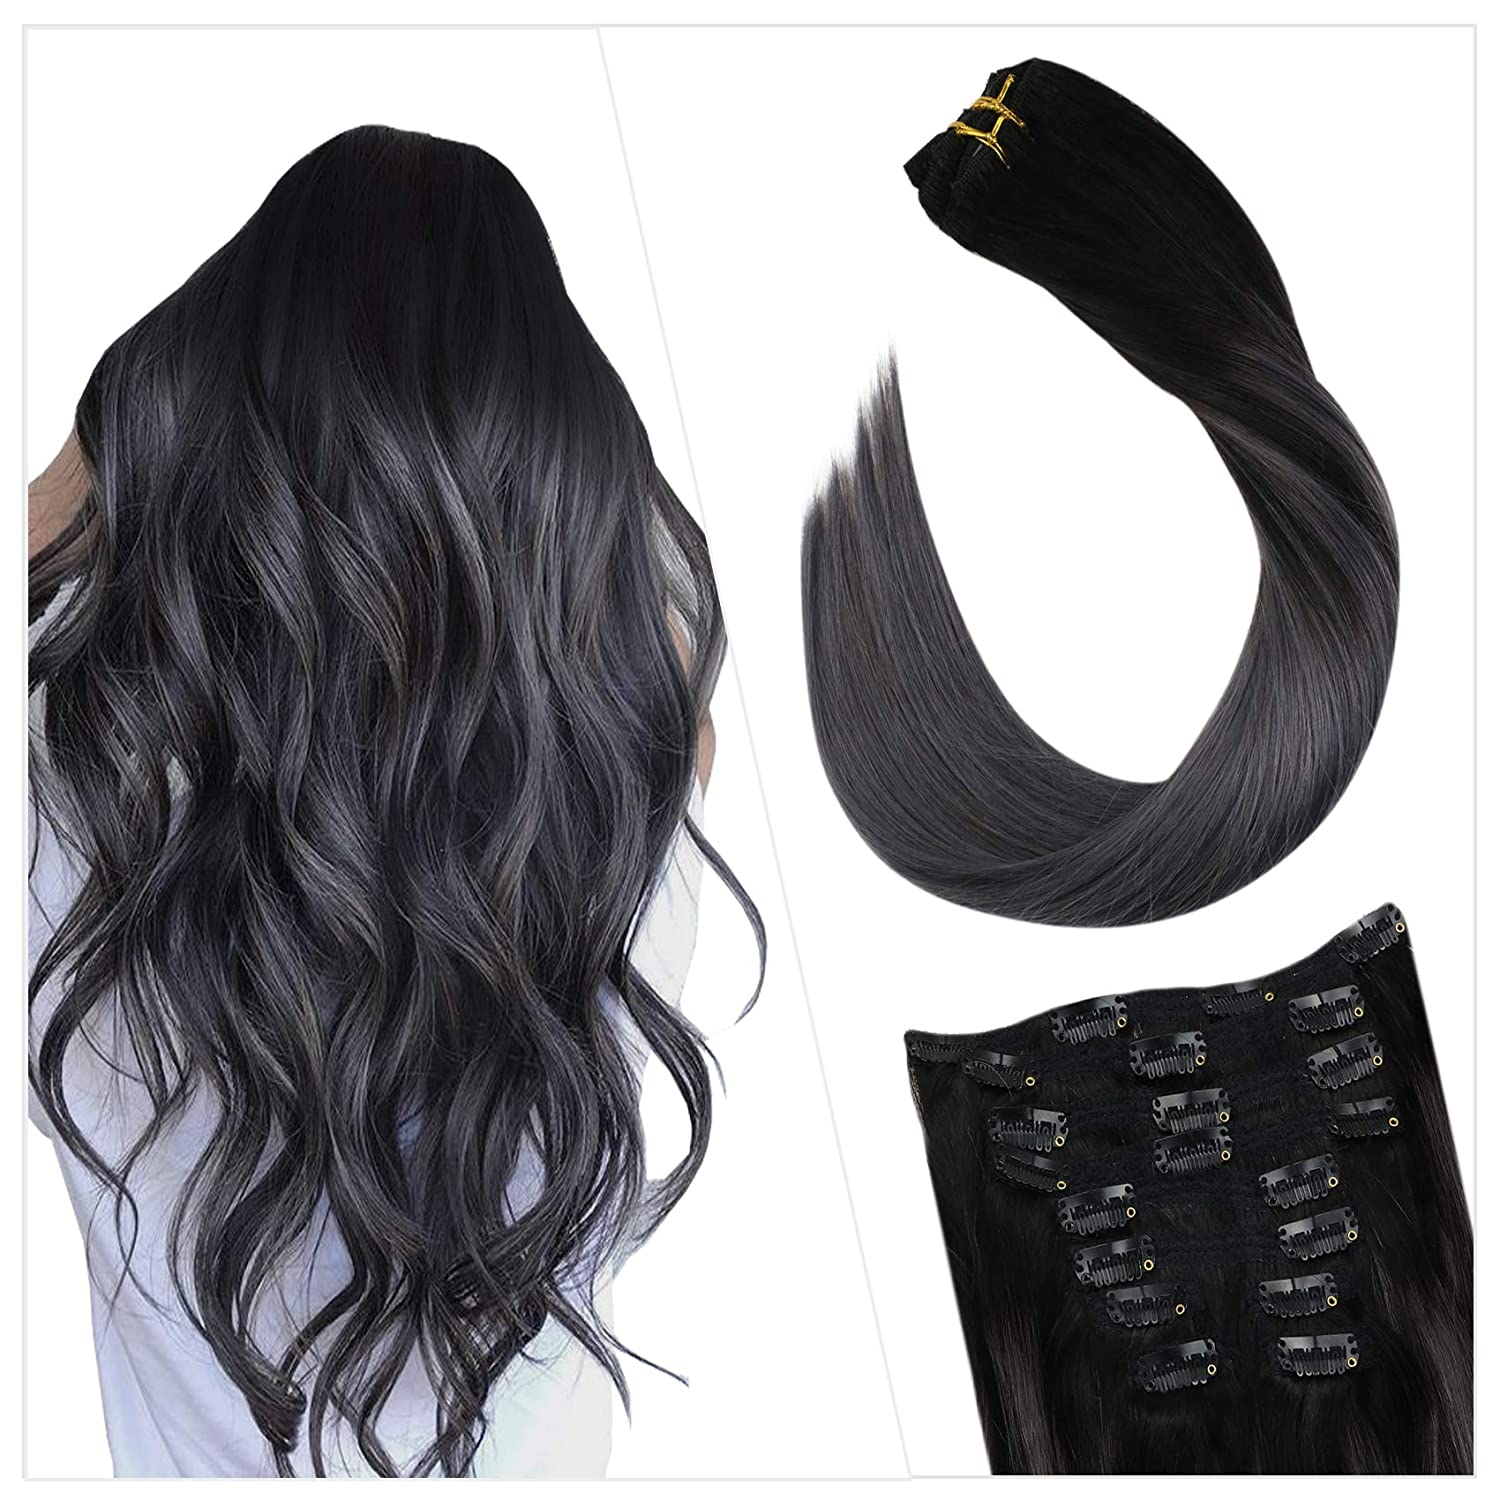 Ueget store 16 Inch Clip Extensions service in Hair Real